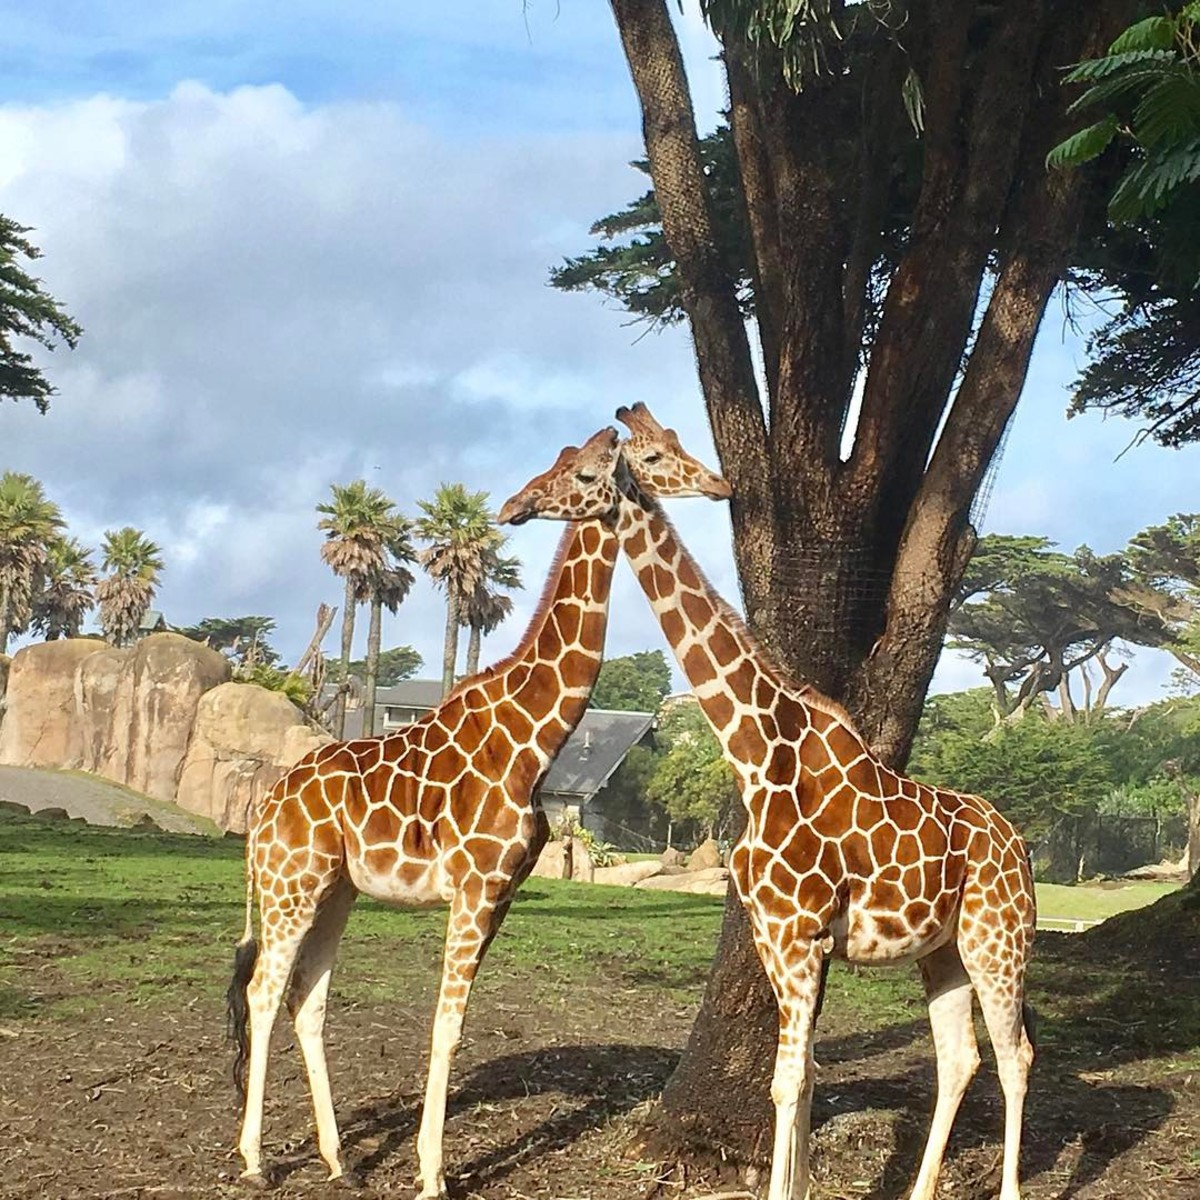 Giraffes at the San Francisco Zoo